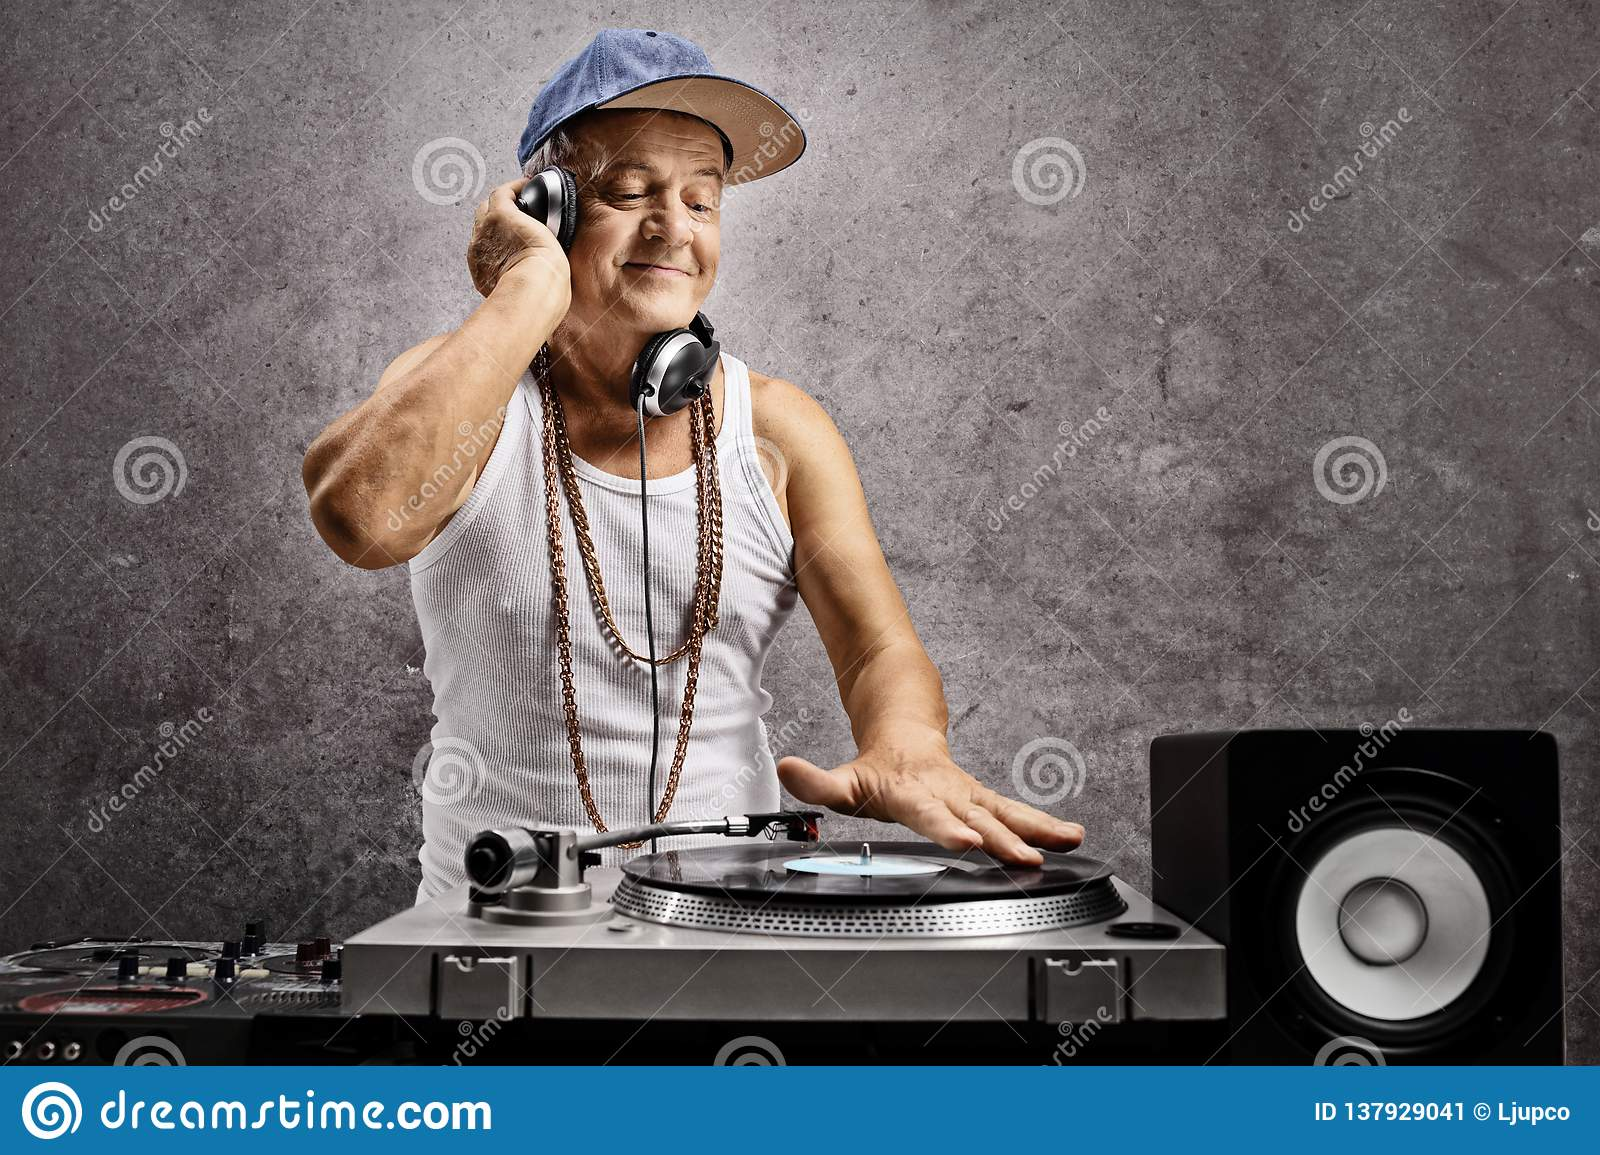 Mature dj with headphones playing music at a turntable